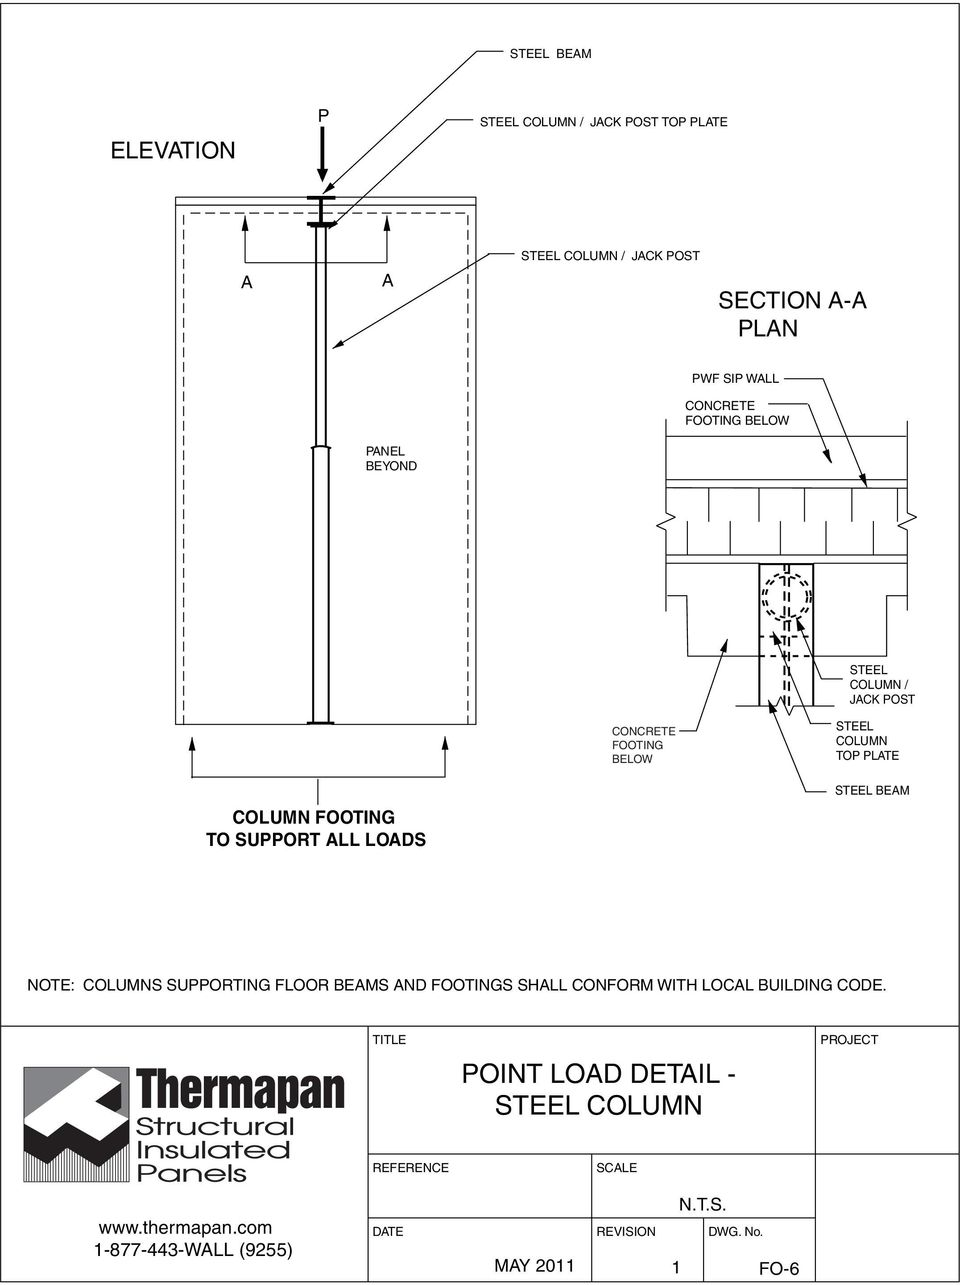 COLUMN TOP PLATE COLUMN FOOTING TO SUPPORT ALL LOADS STEEL BEAM NOTE: COLUMNS SUPPORTING FLOOR BEAMS AND